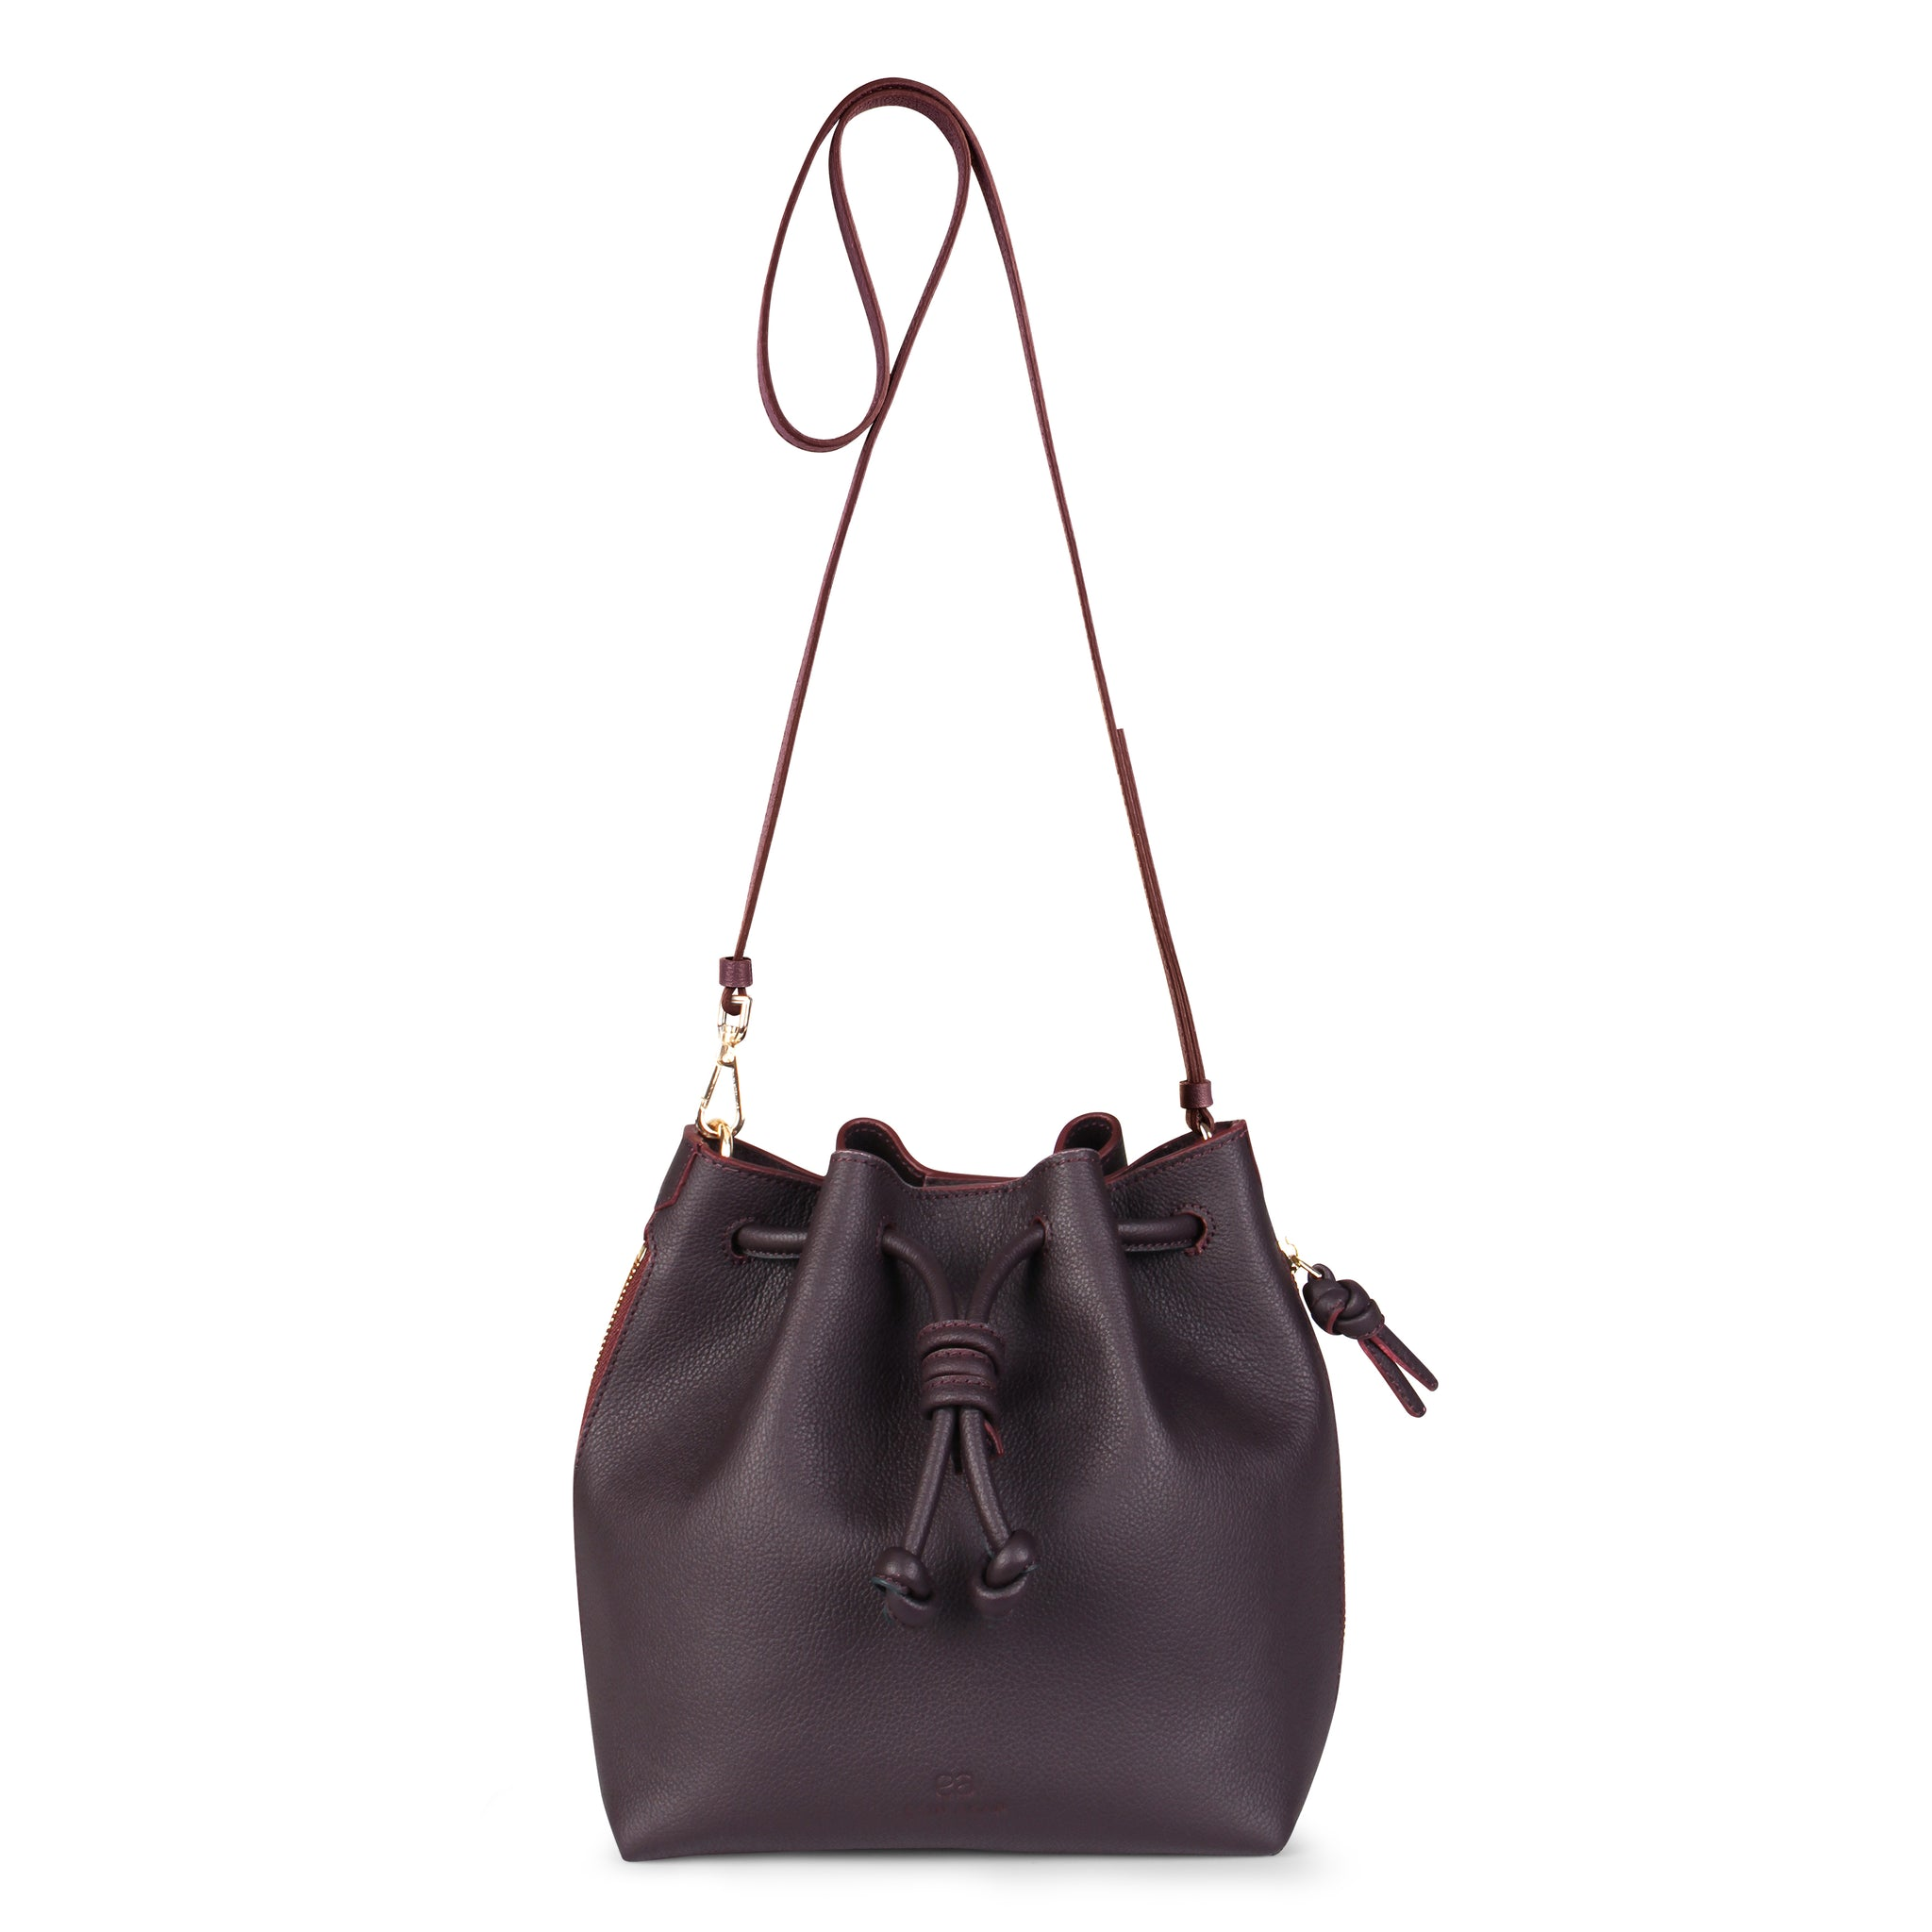 A convertible medium leather bucket crossbody bag in burgundy and pink that could be used as a backpack, front image.